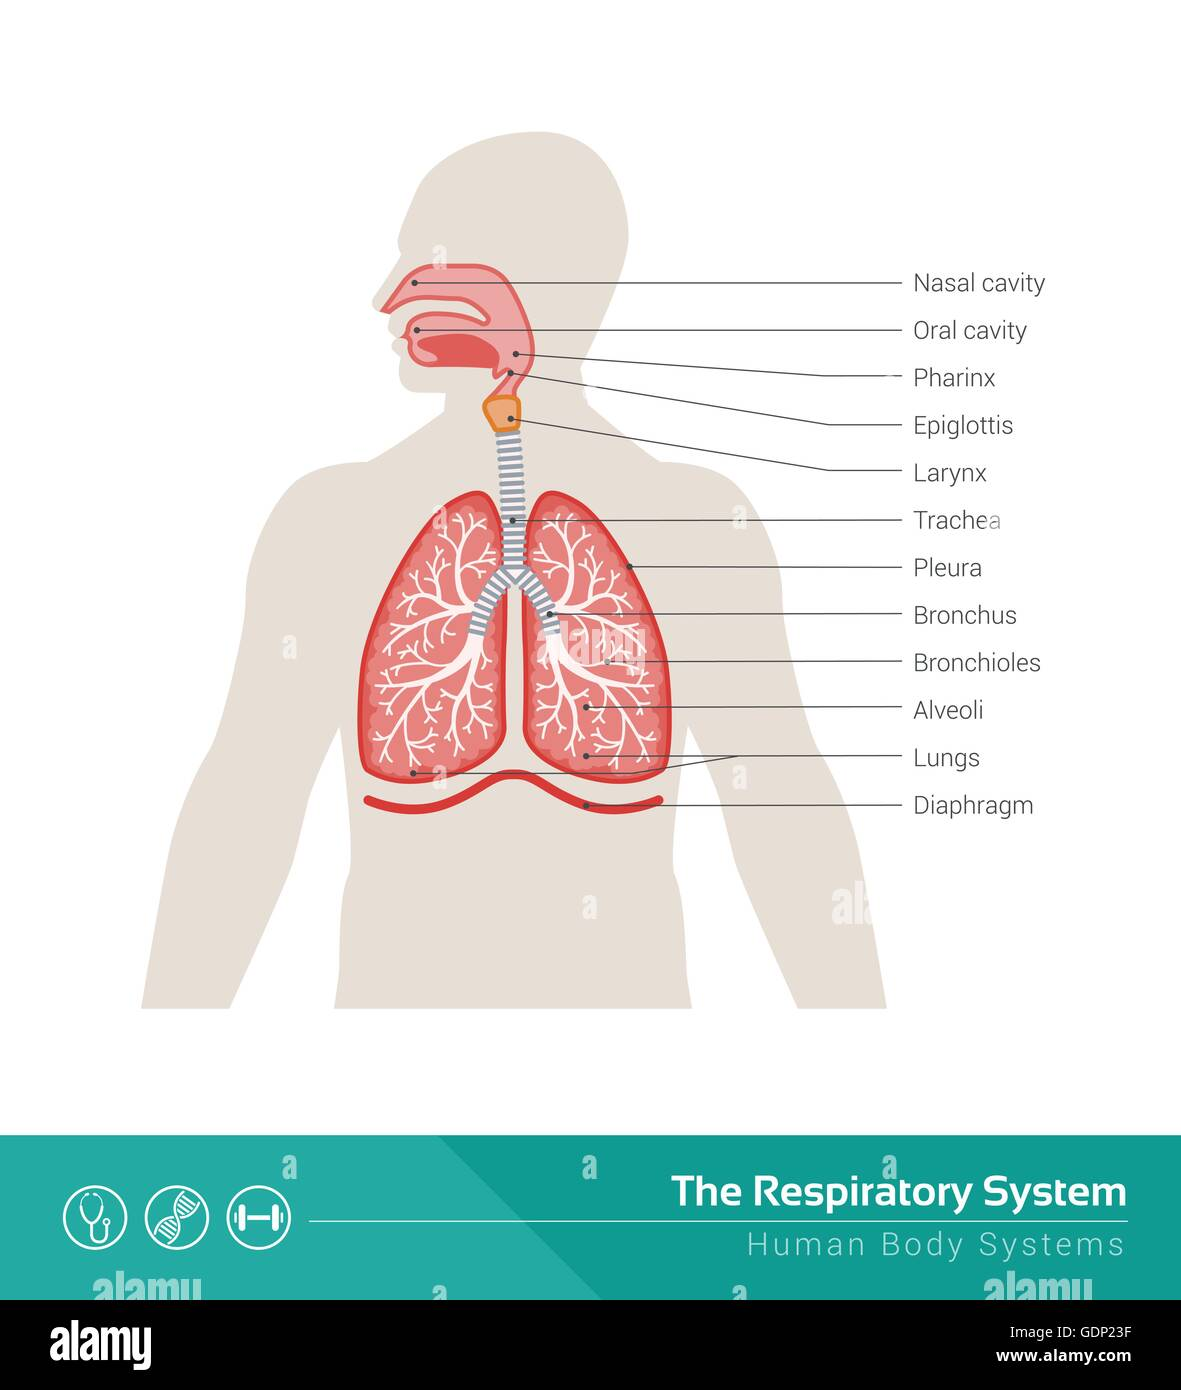 Organs Of The Respiratory System Stockfotos & Organs Of The ...